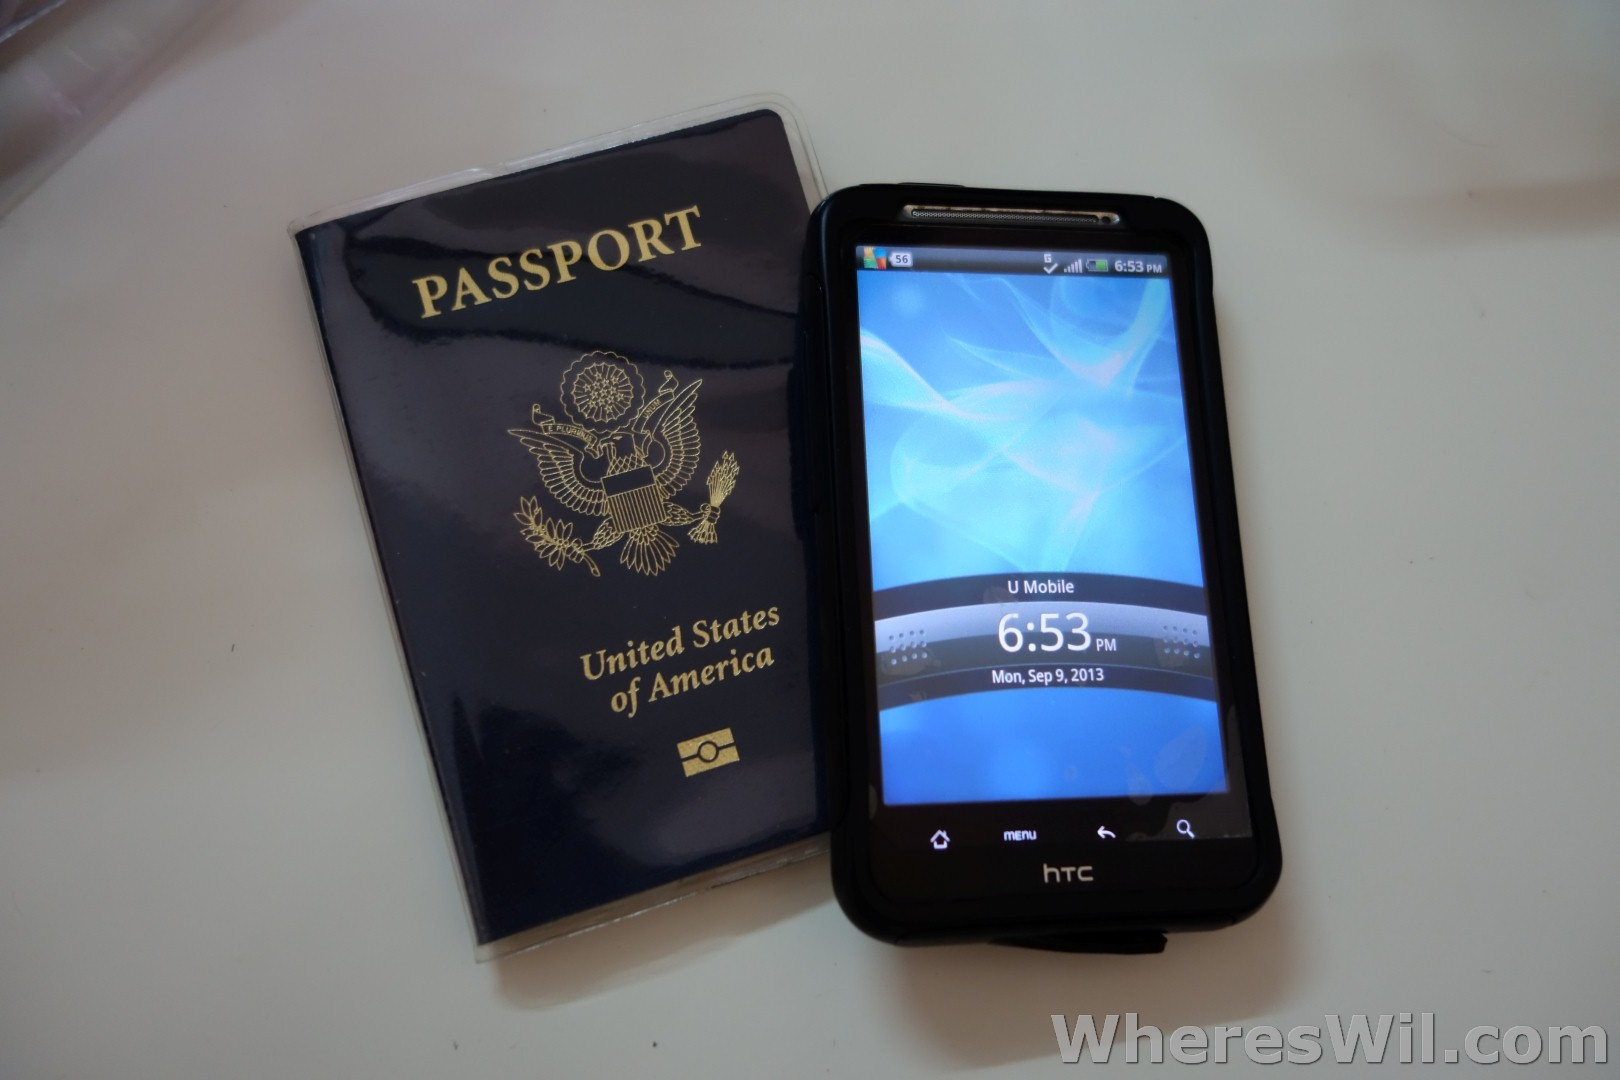 Passport-with-phone